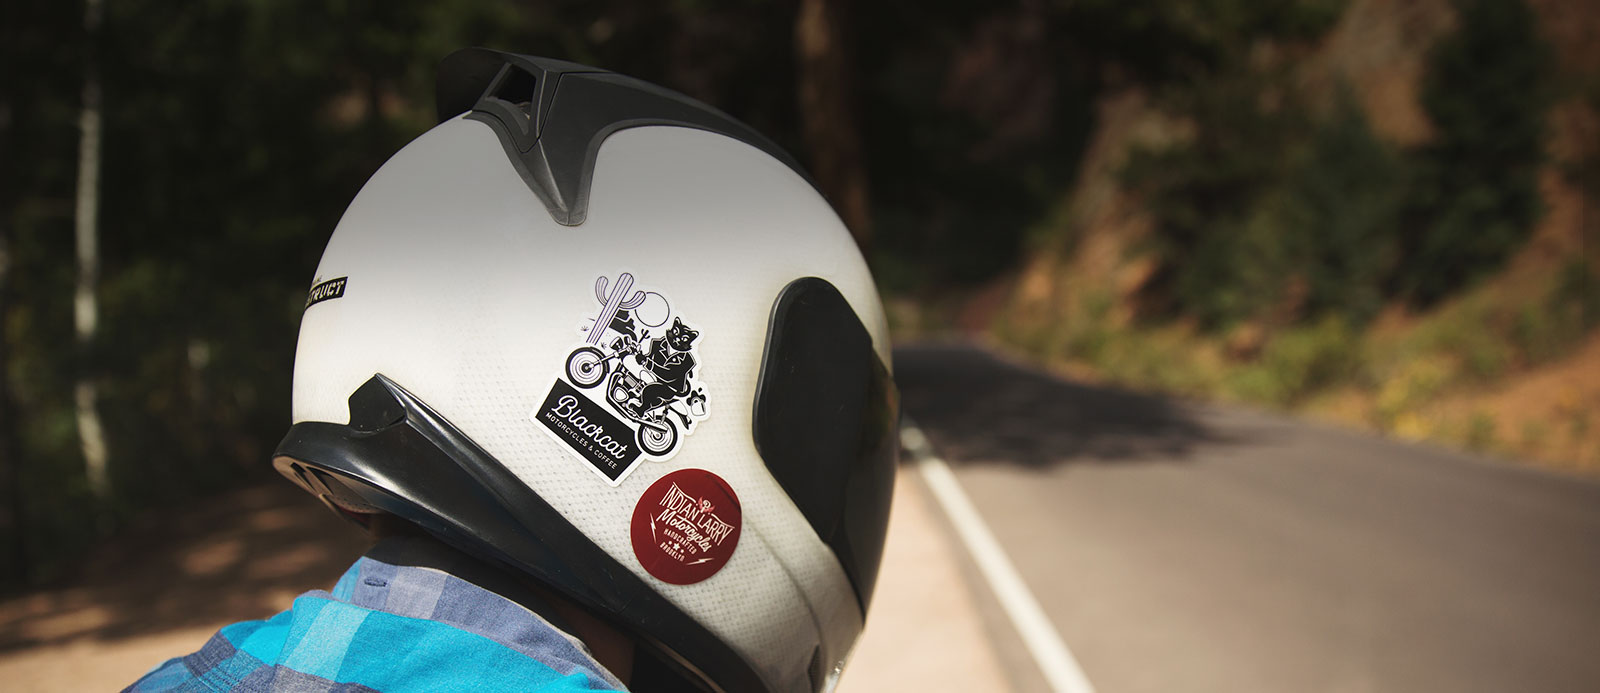 Motorcycle helmet stickers